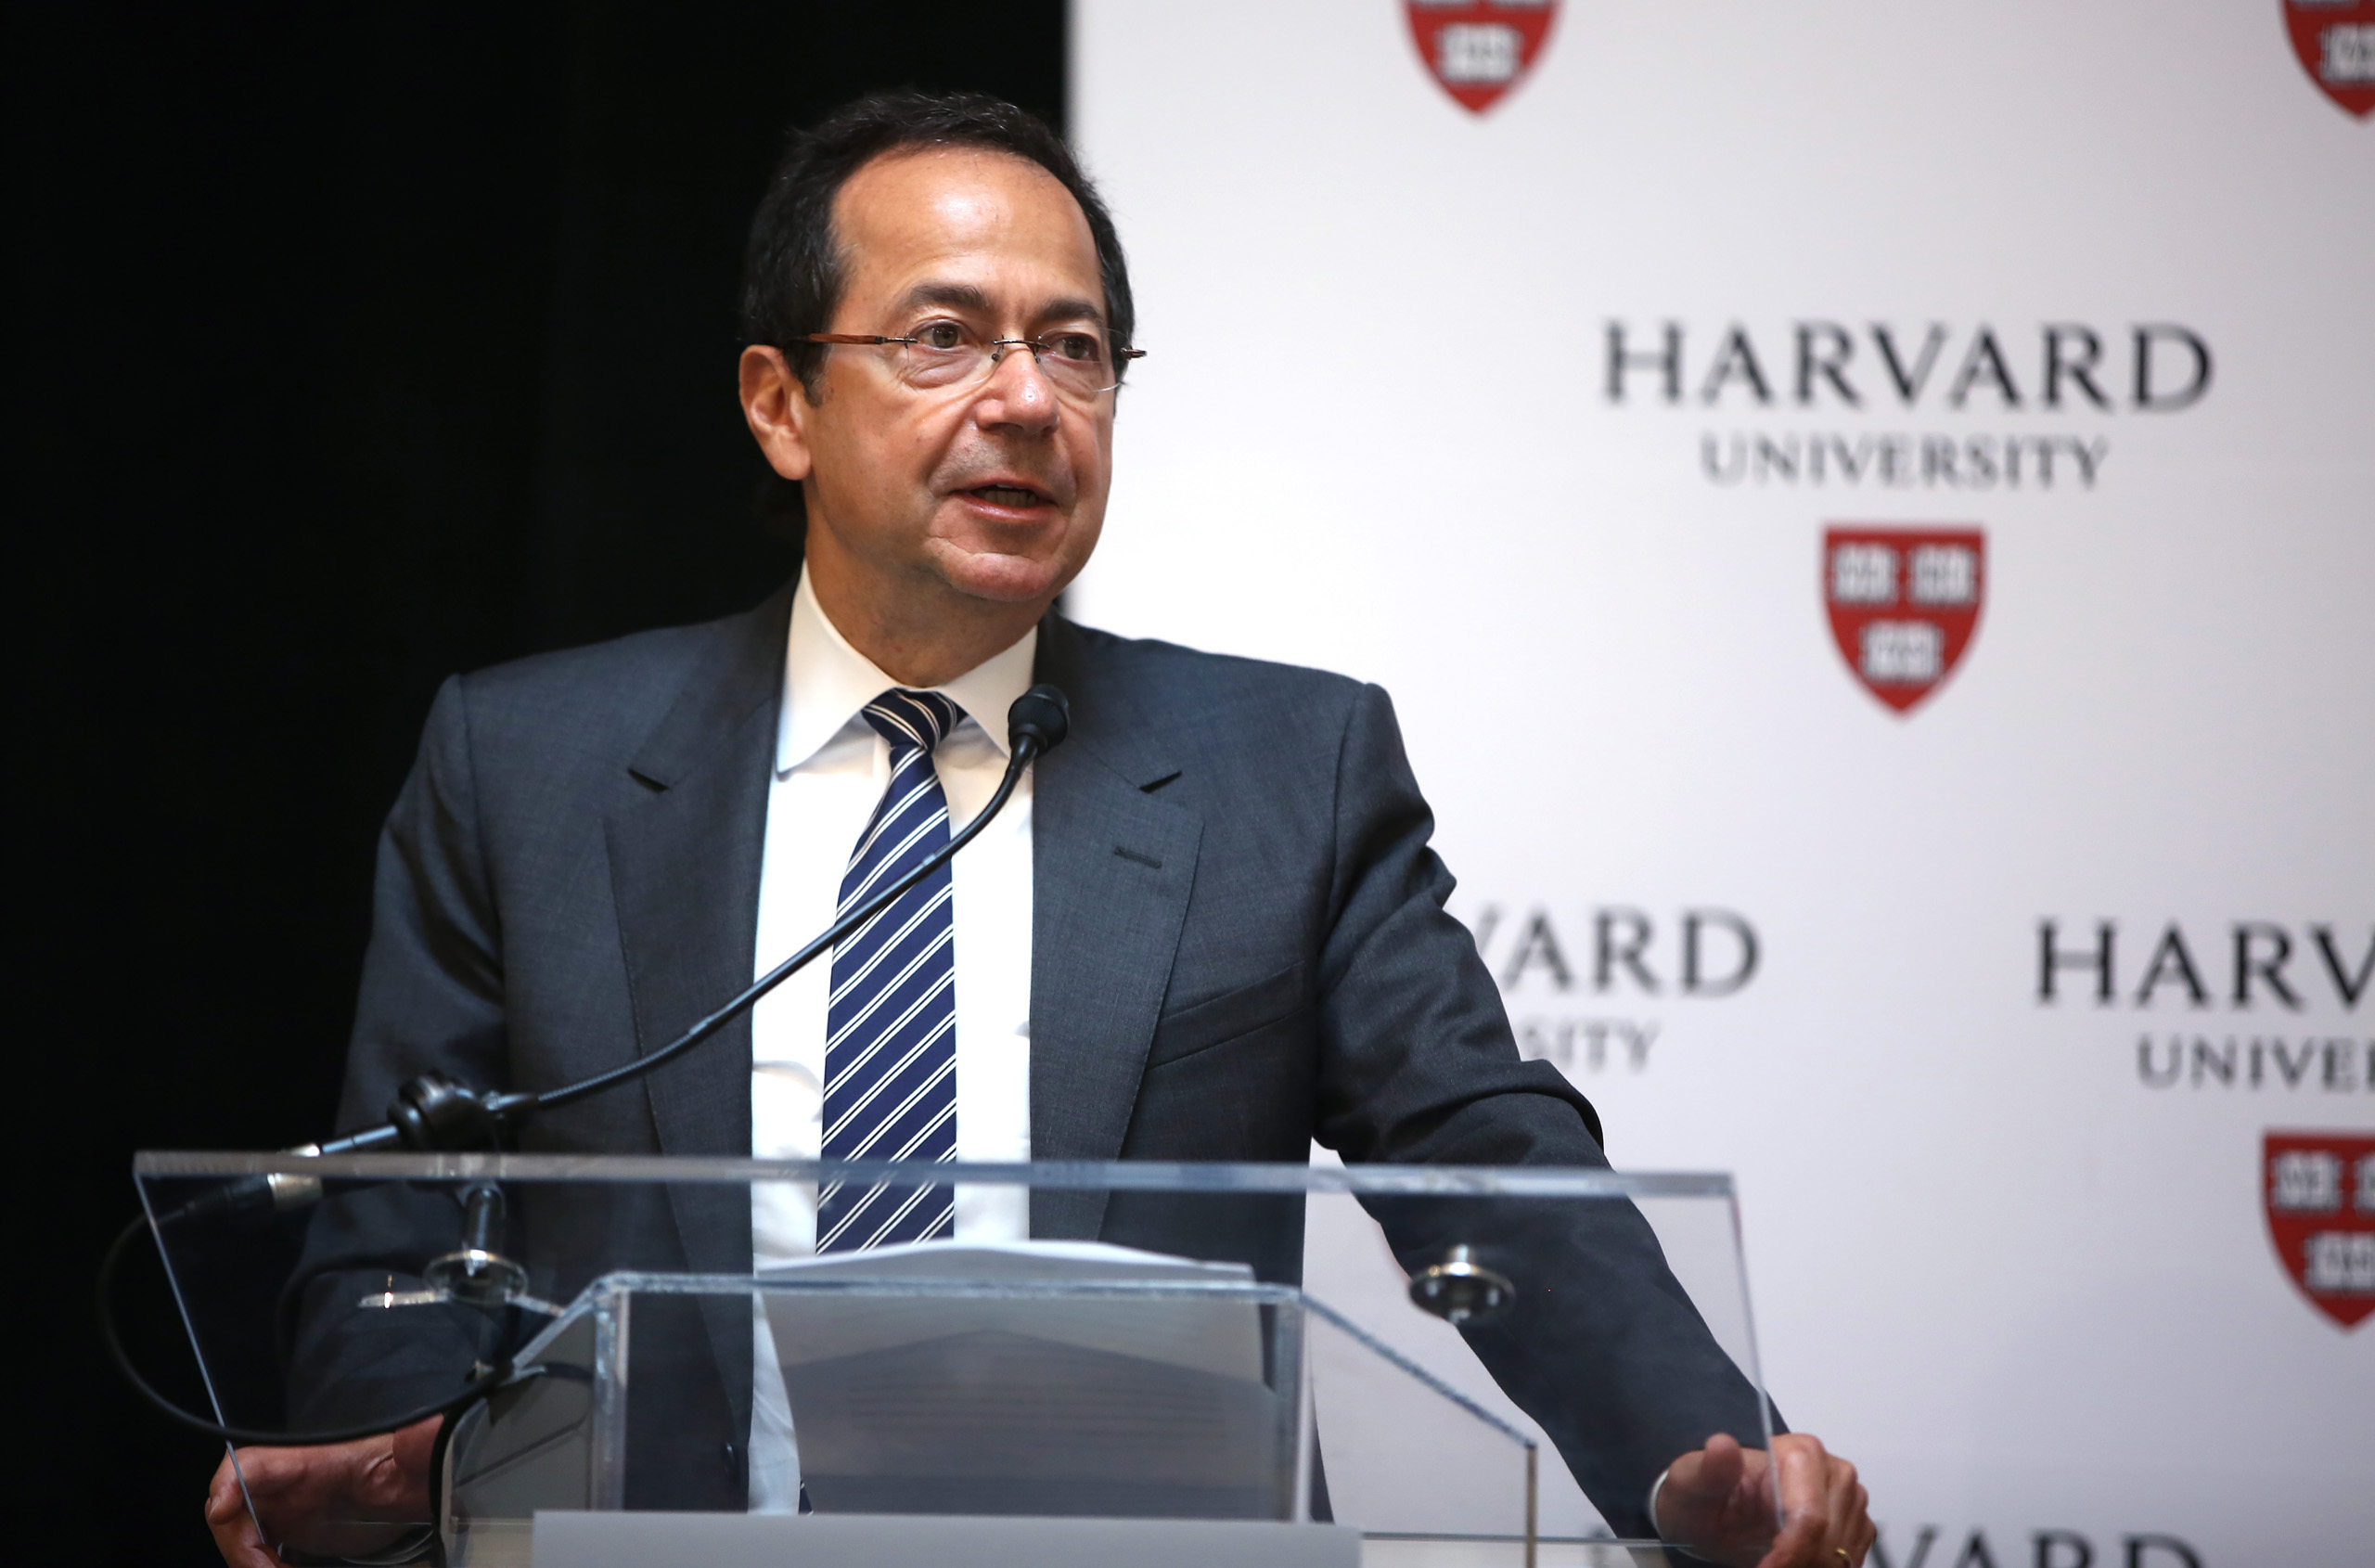 John A. Paulson makes comments during a noontime press conference at Harvard University to announce his gift of $400 million in Cambridge, Ma. on June 3, 2015.